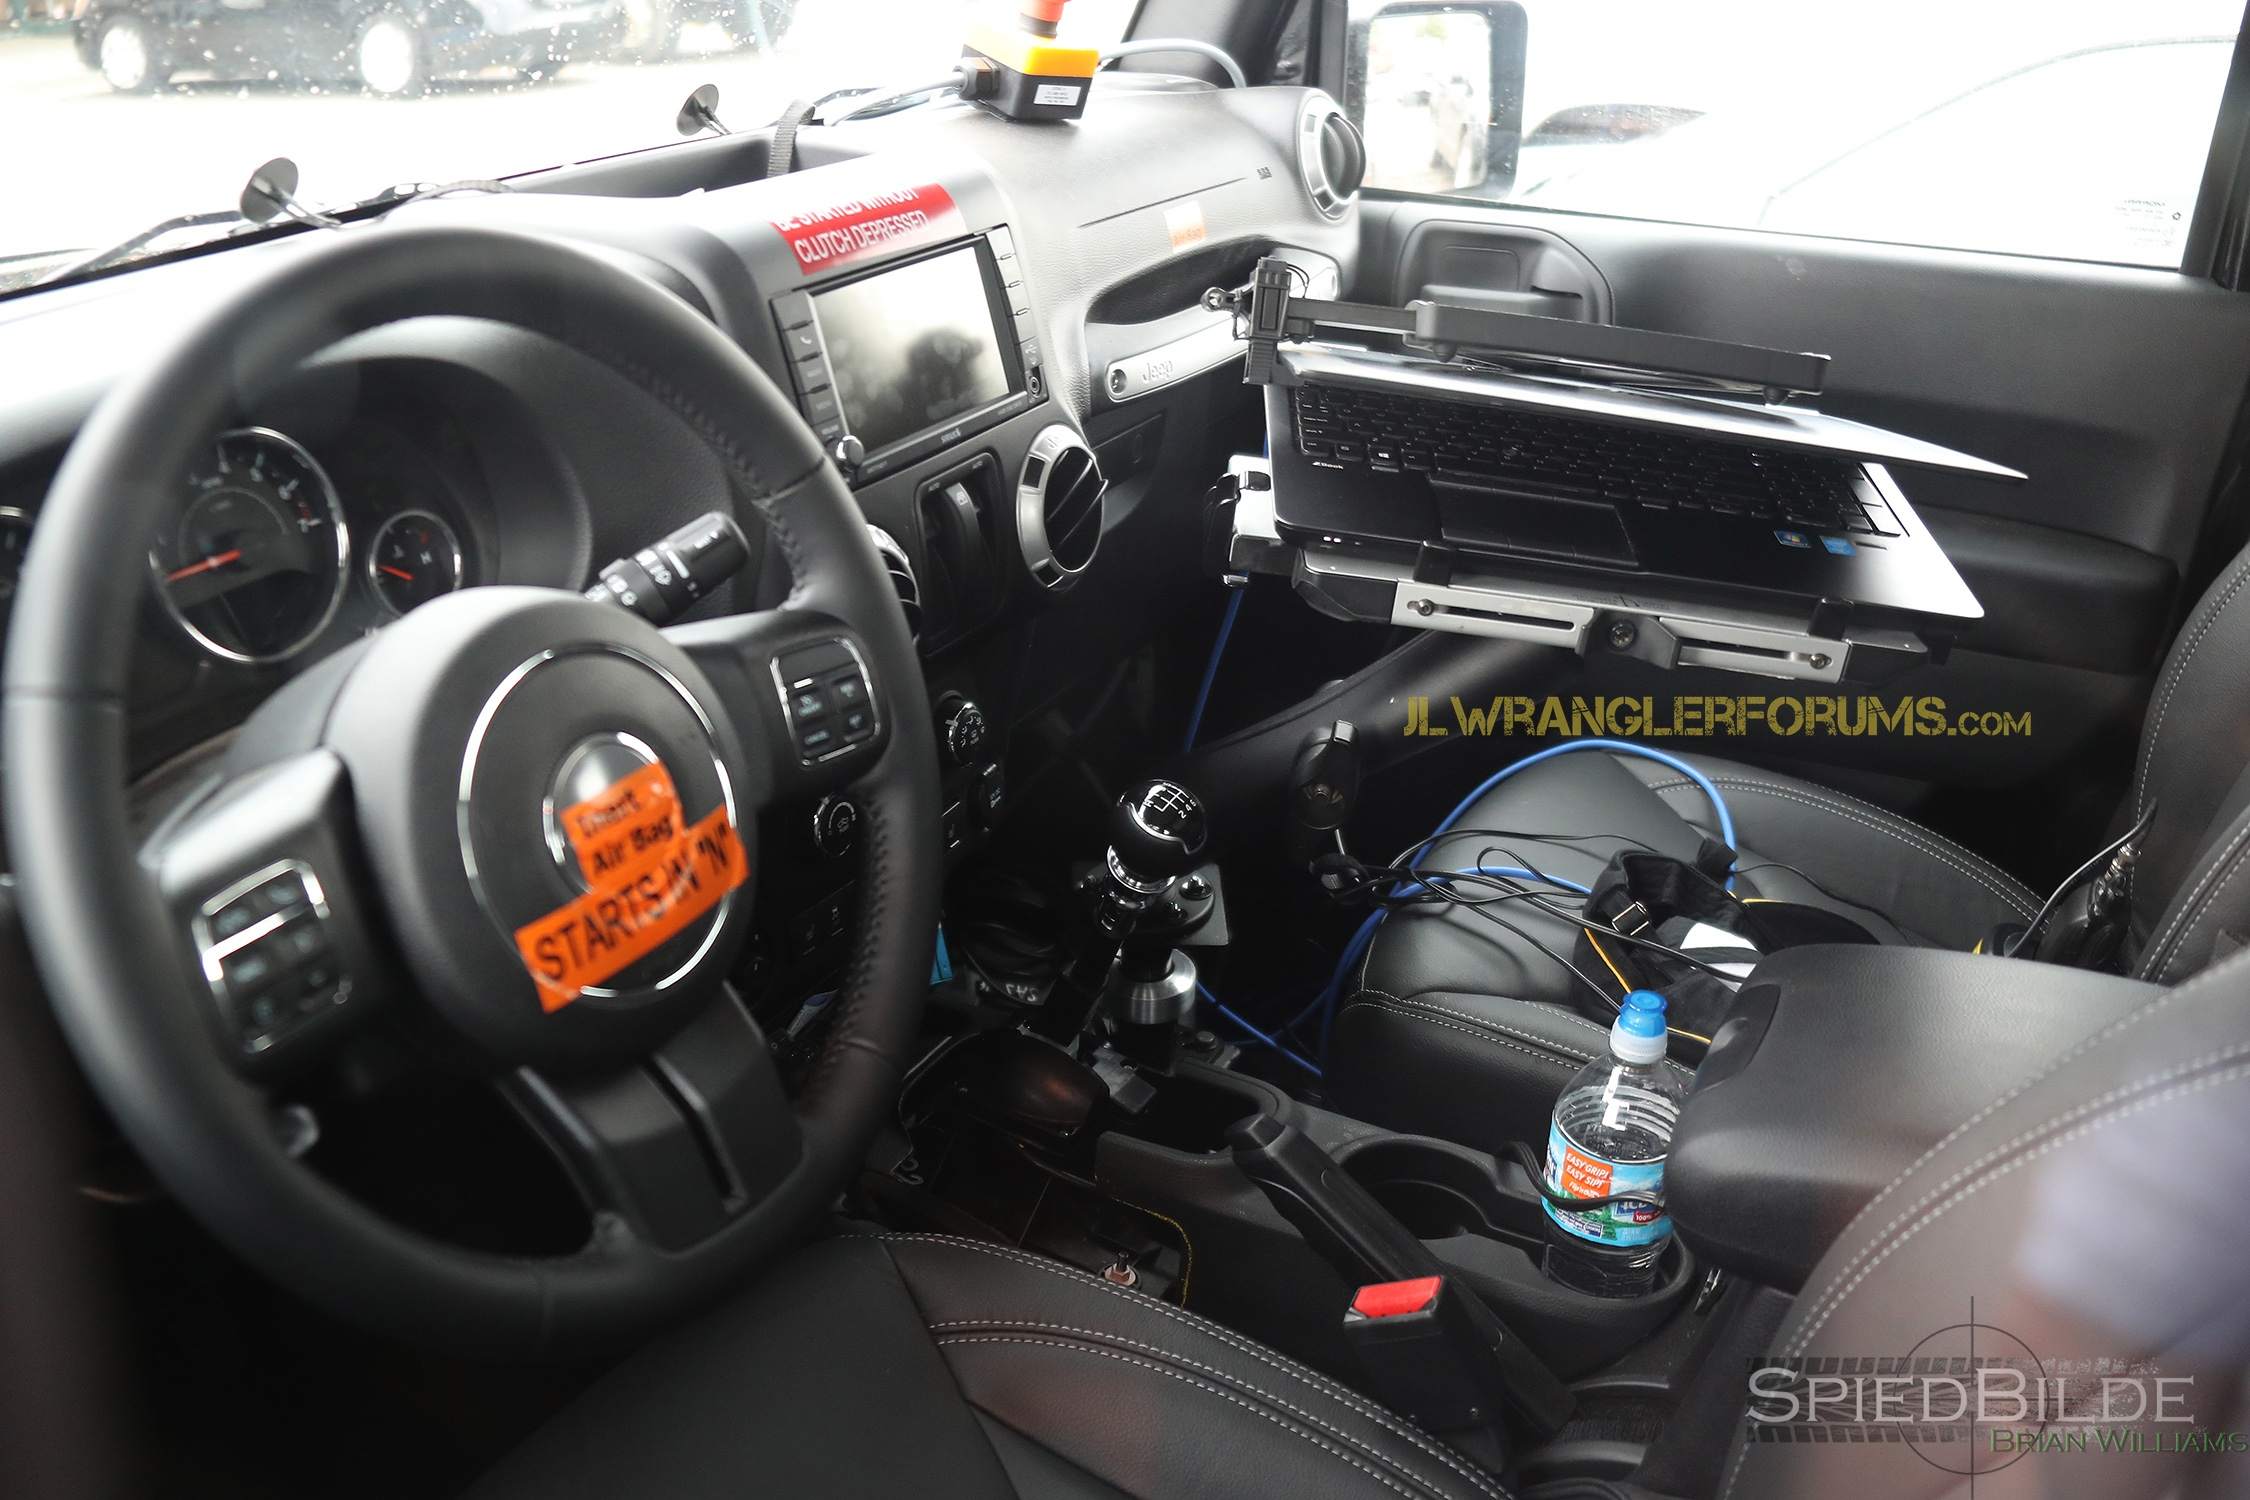 jeep wrangler 4 door interior. confirmed 2018 jeep wrangler still offers sixspeed manual spied in interior photos 4 door